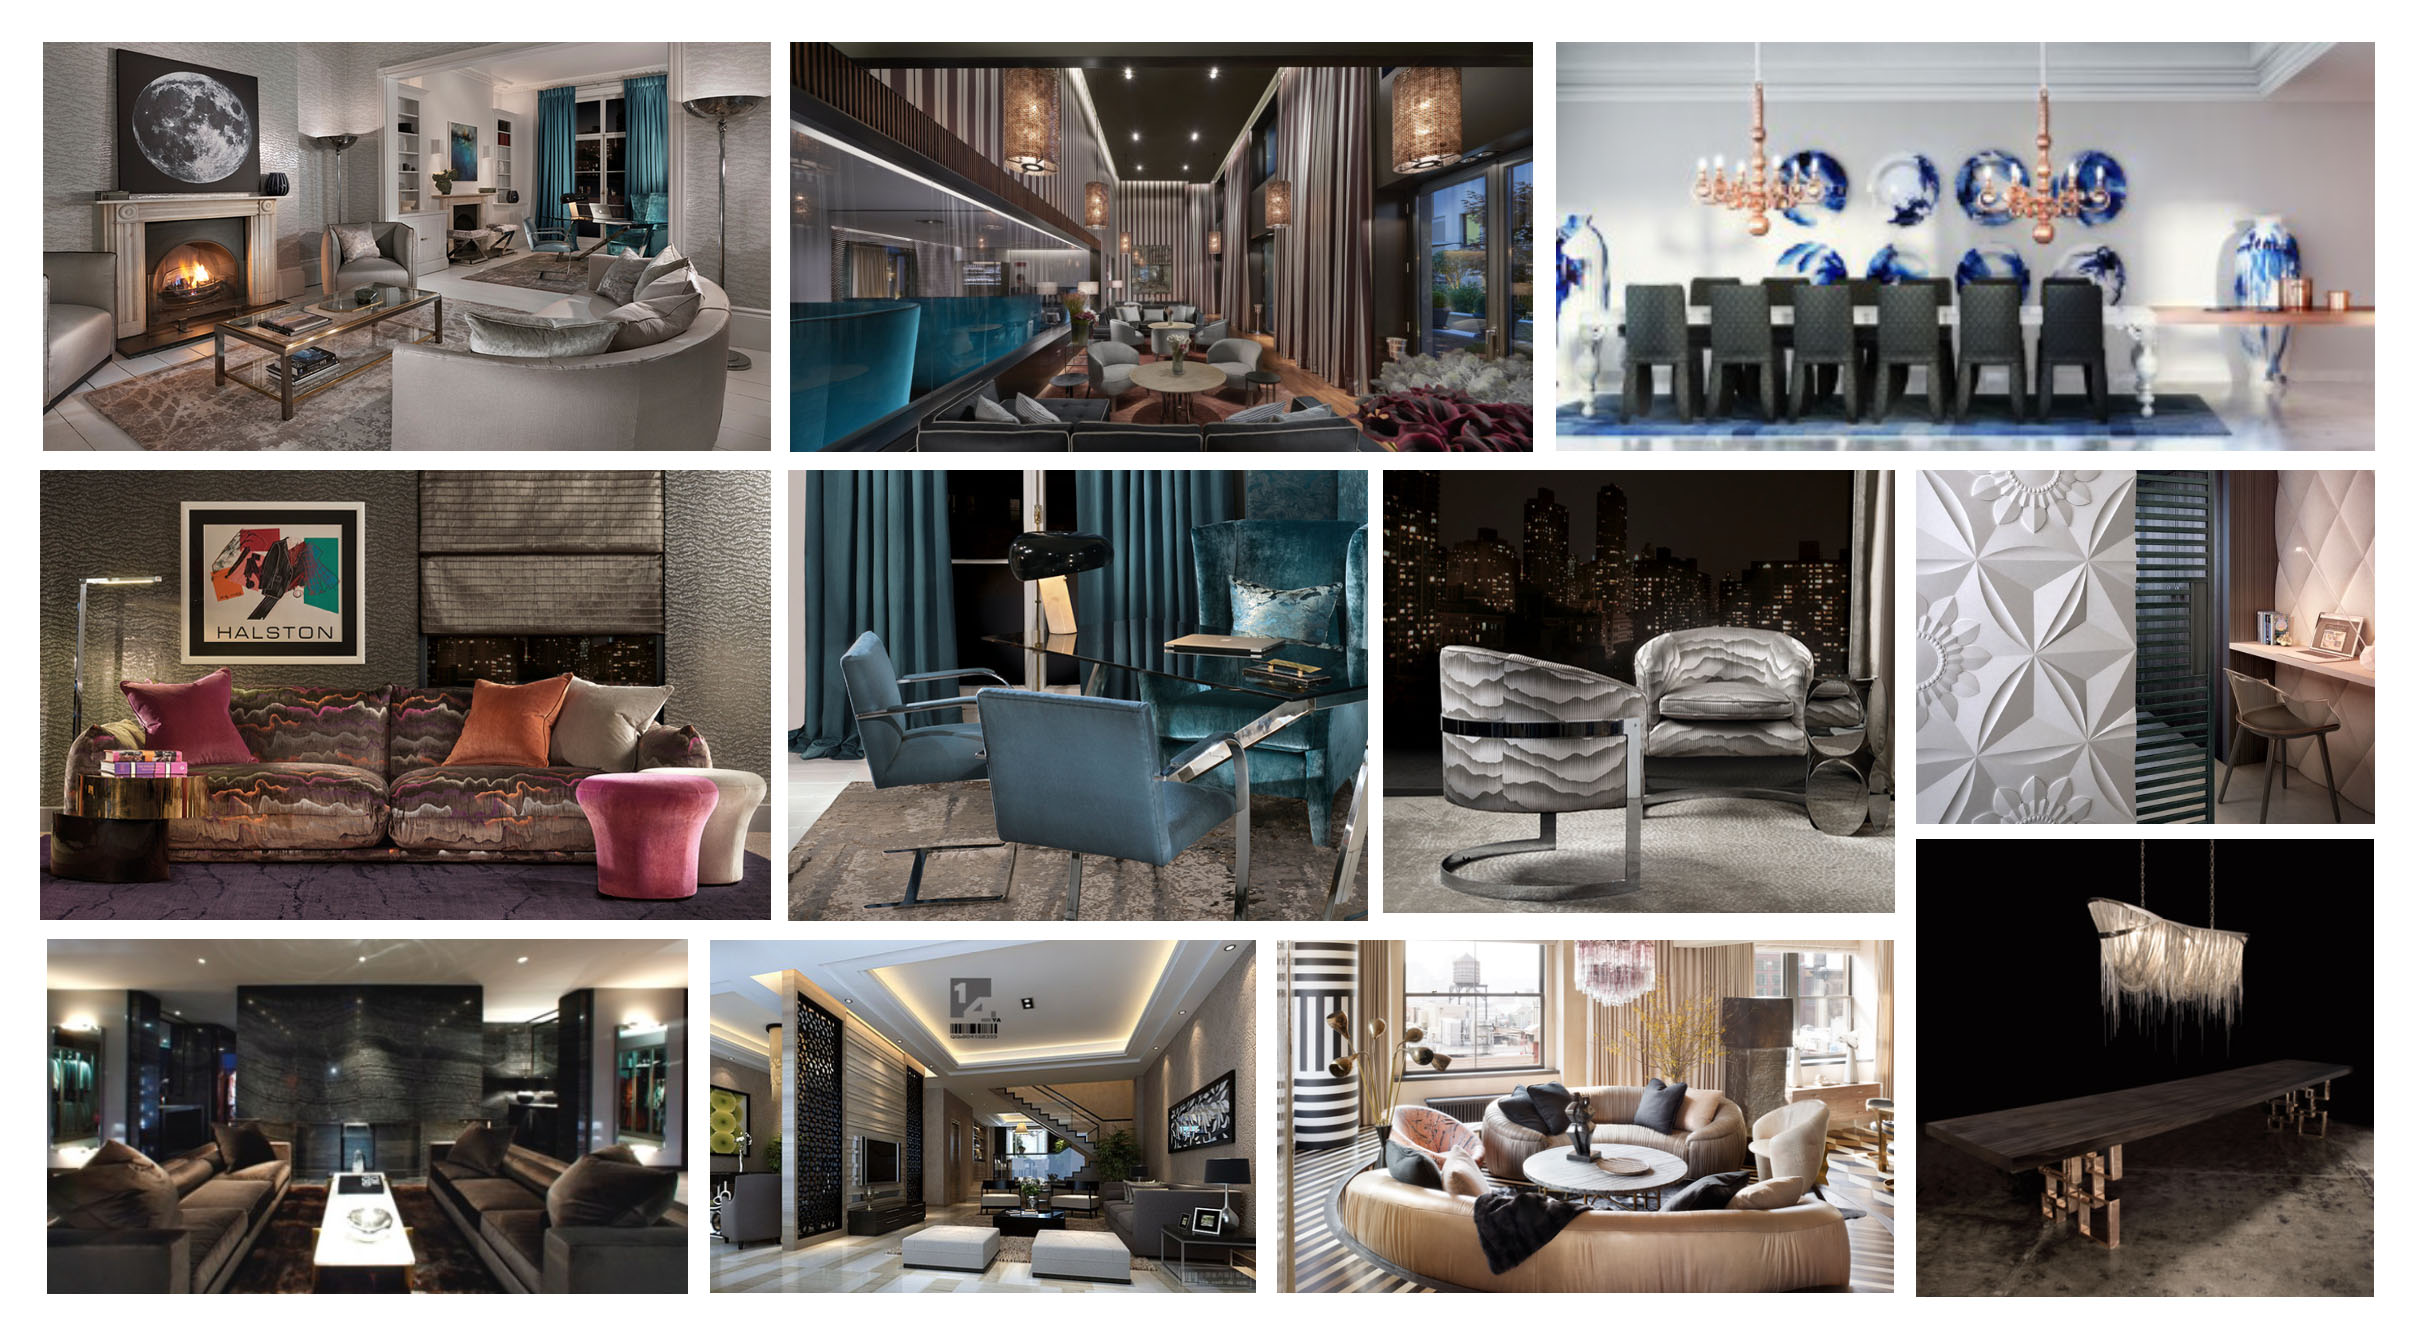 """Ozzykdesigns  - The concept and visual aesthetics are formed with digital boards (visual inspiration of aesthetic), and sketches to create a """"sense"""" of design elements within the spaces."""